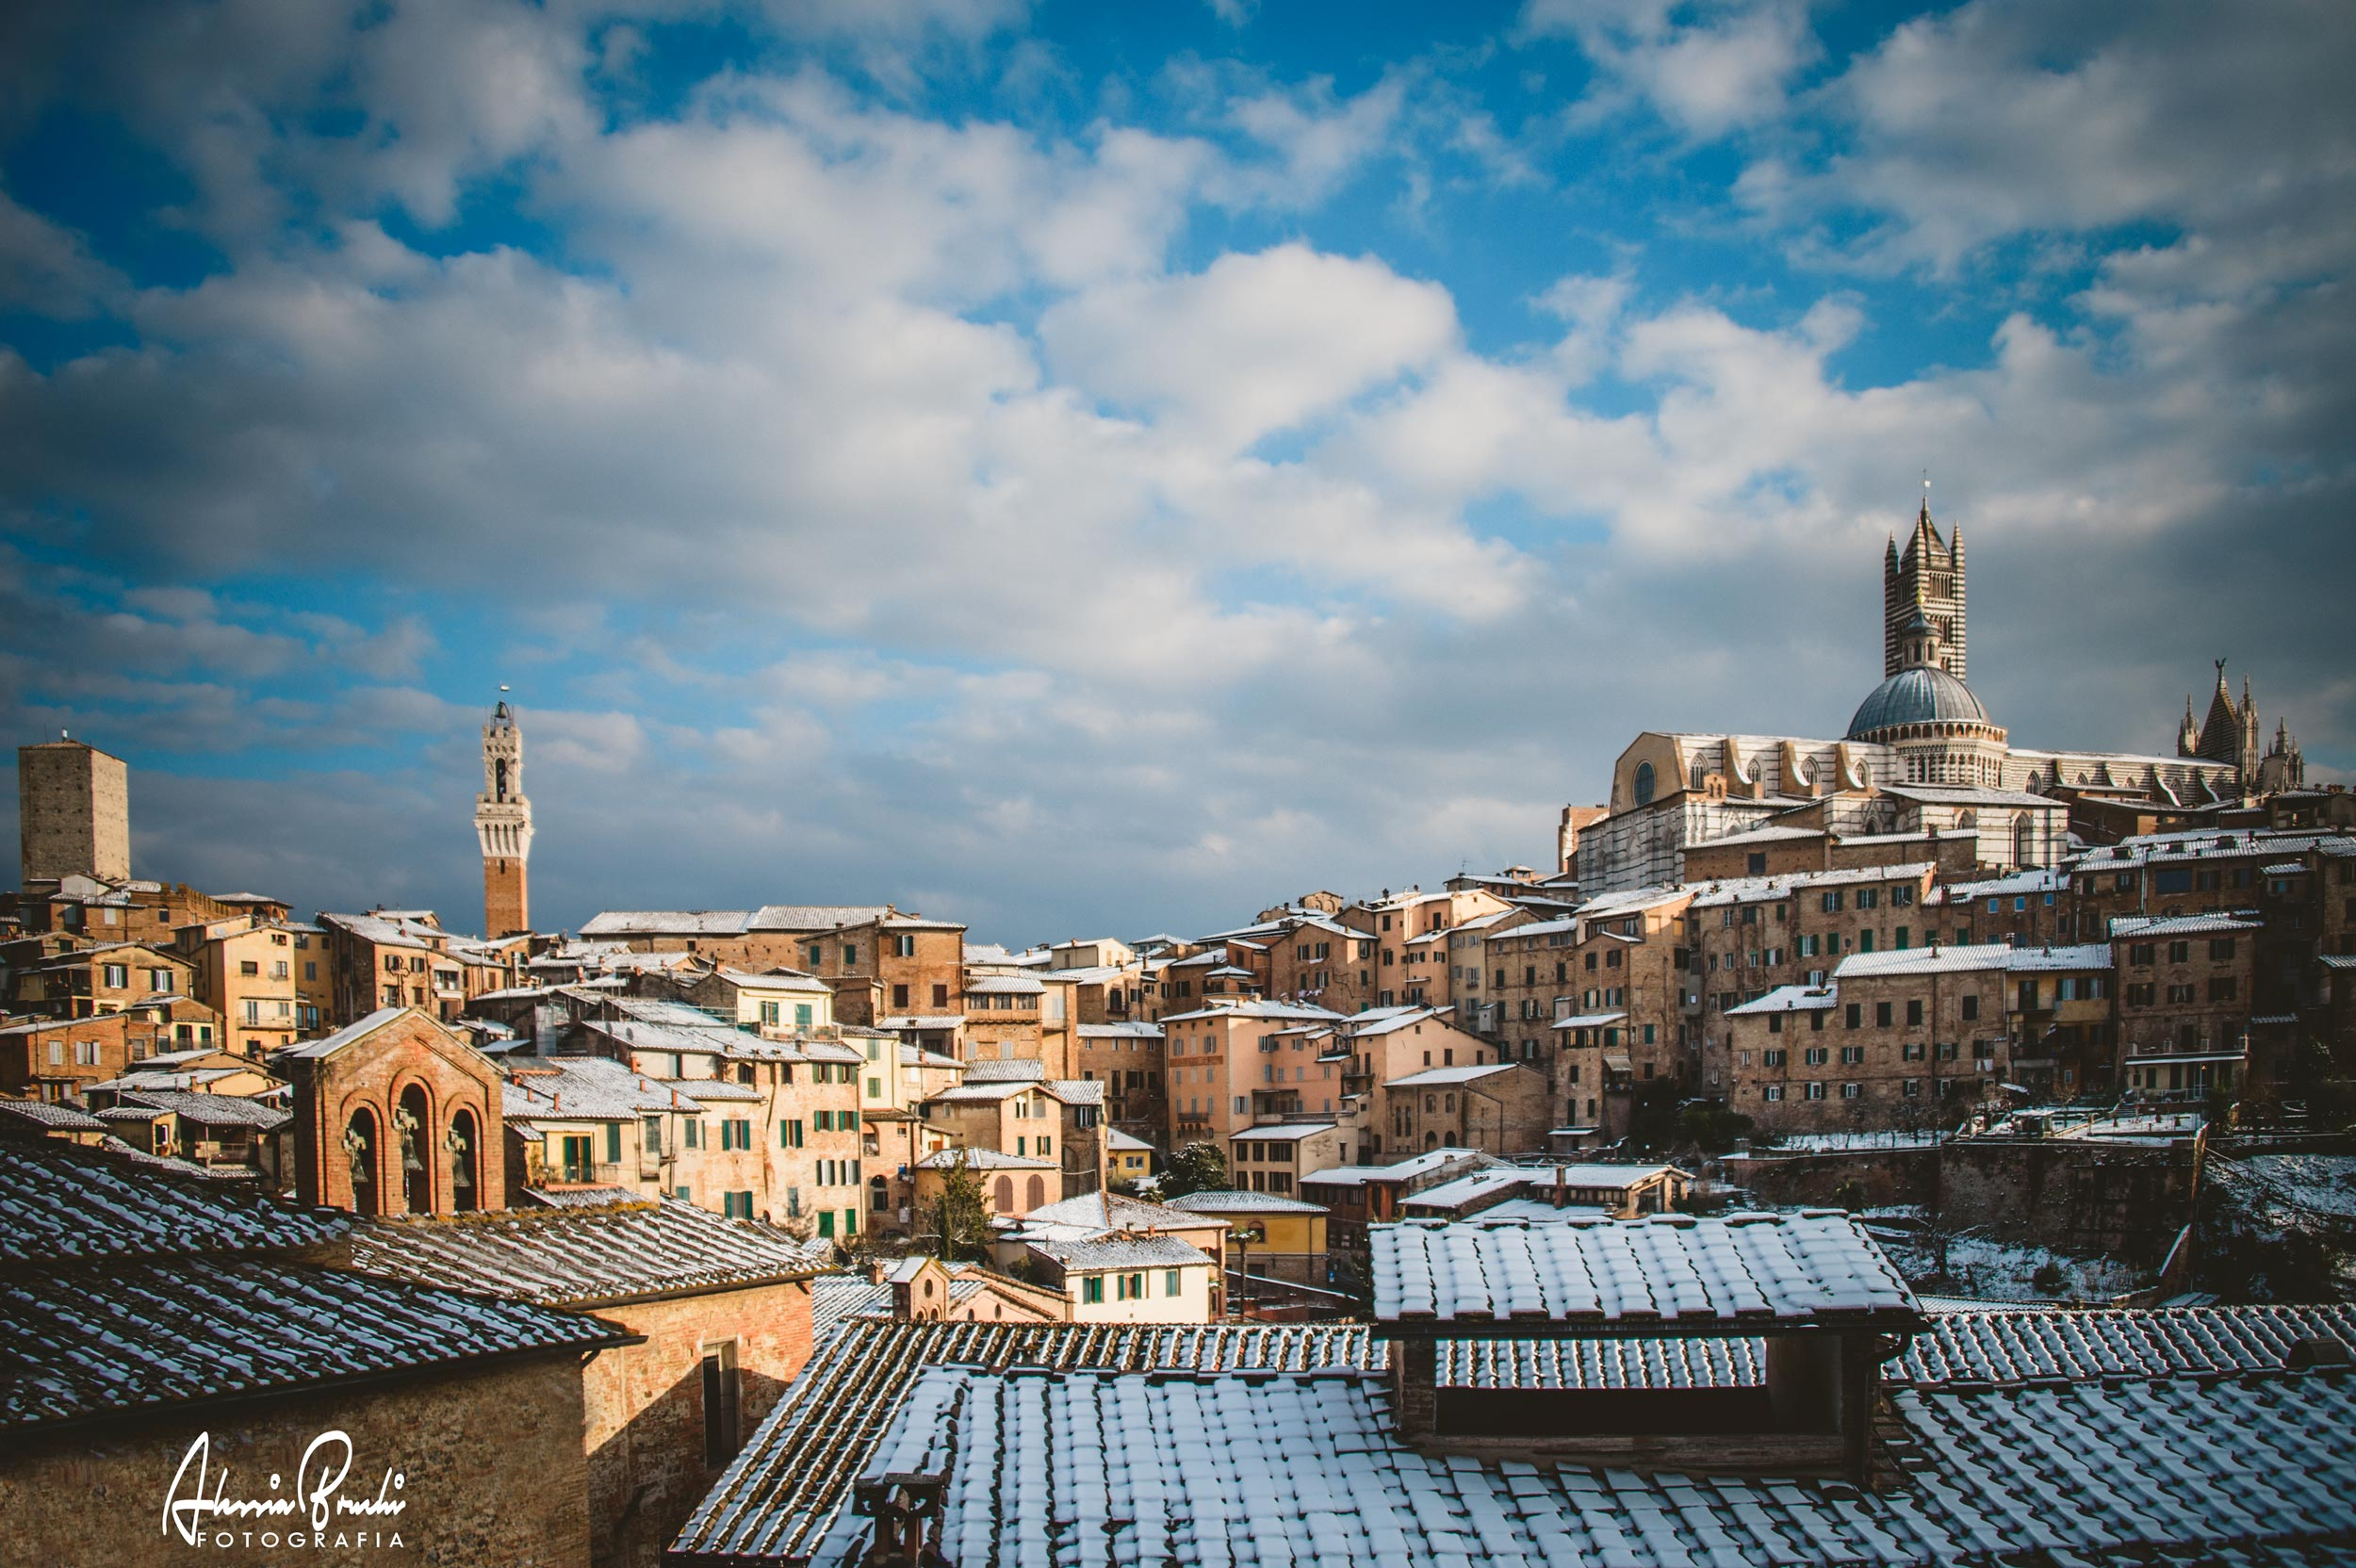 alessia bruchi fotografia landscapes photographer - winter in siena tuscany